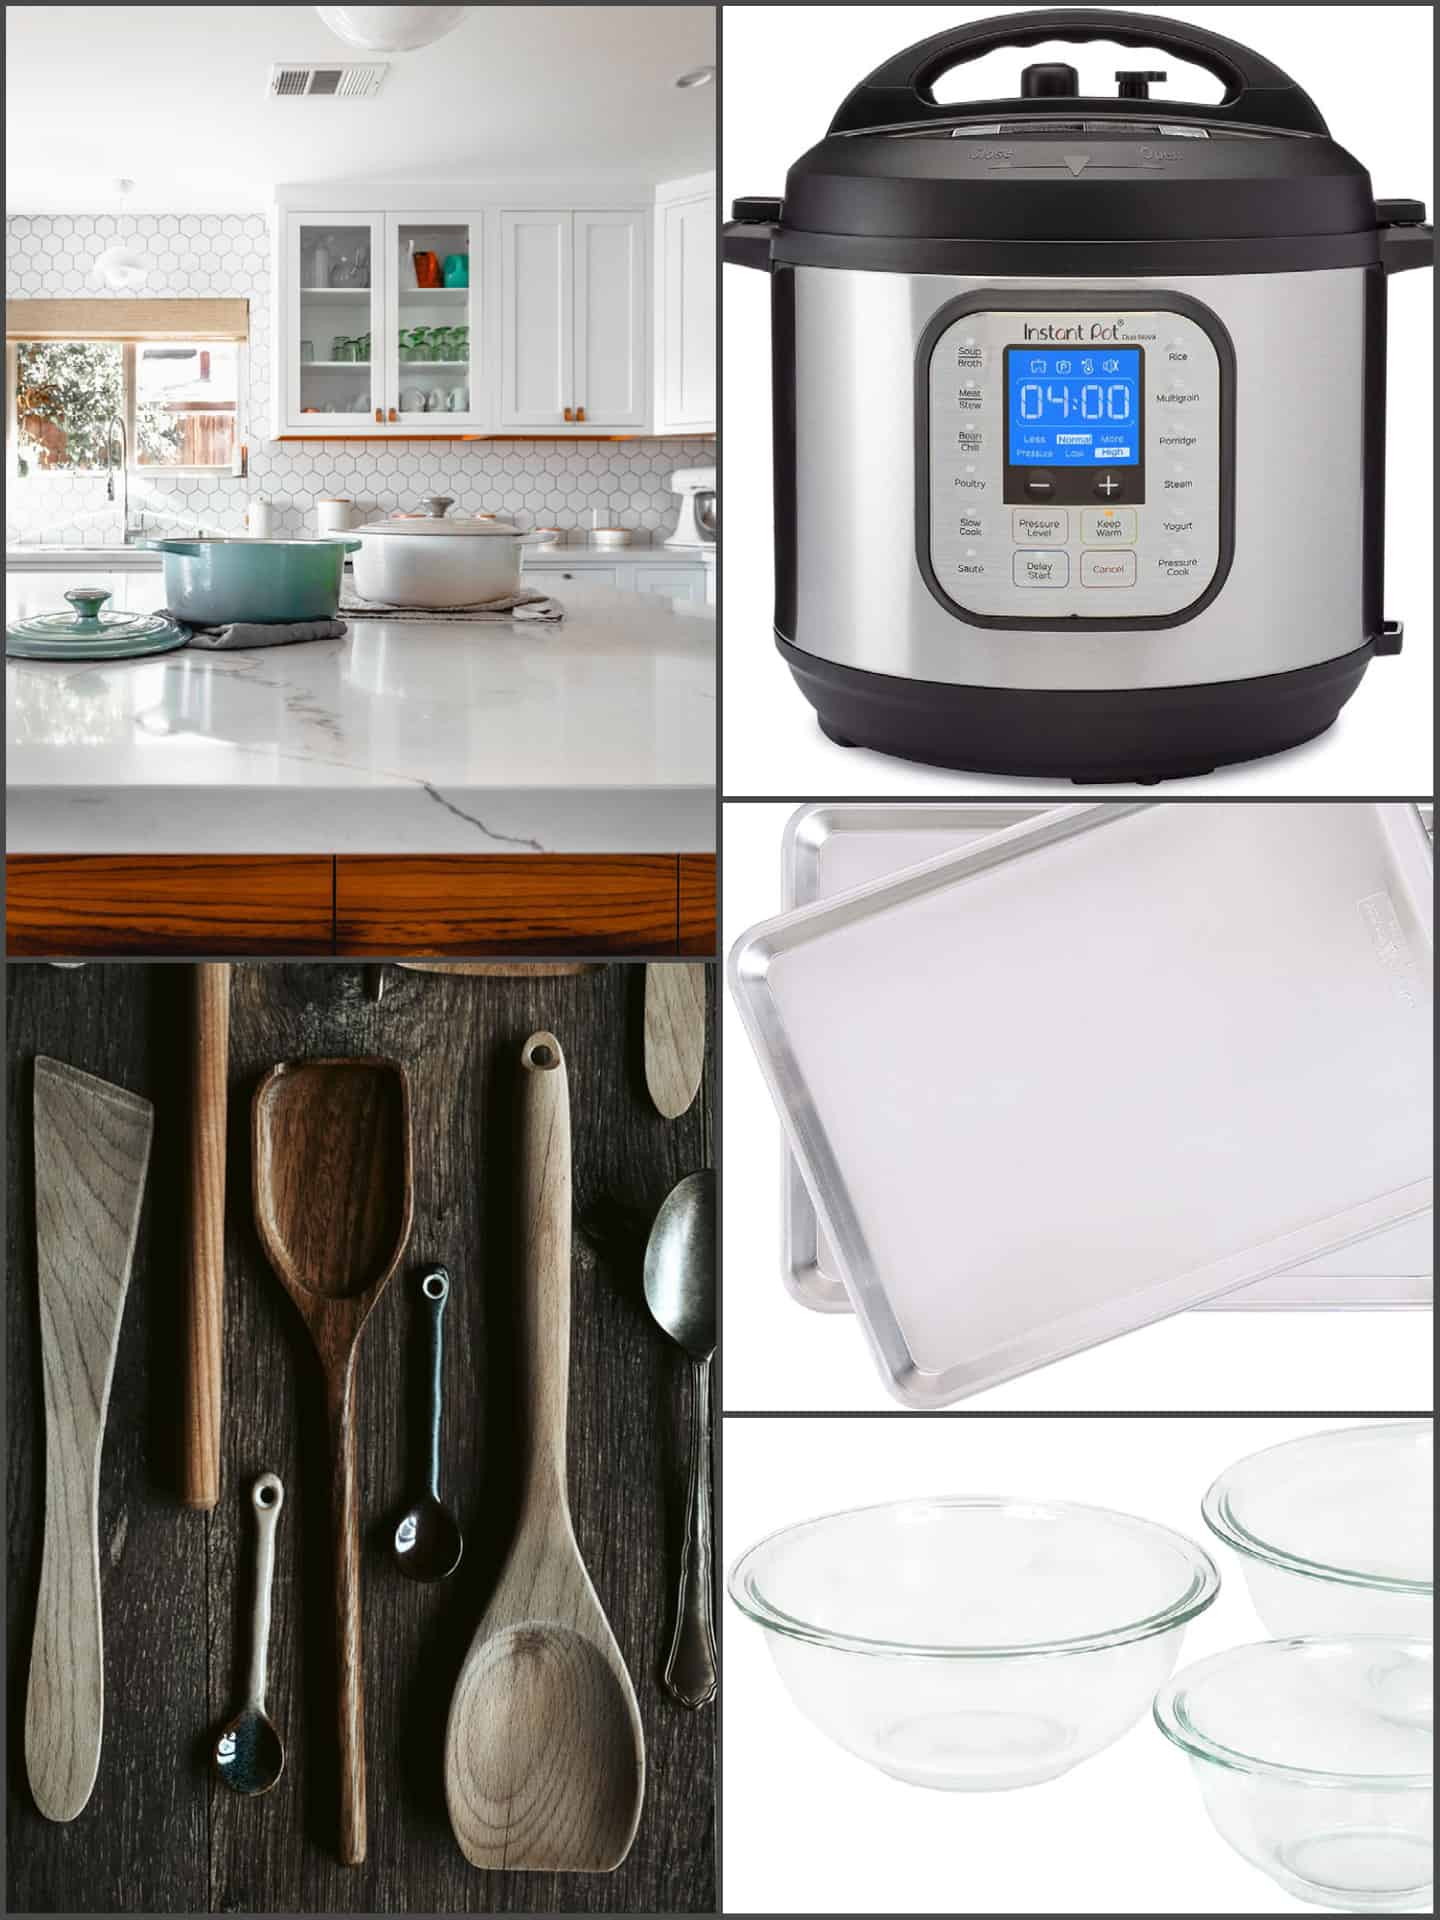 Pots, wooden cooking utensils, instant pot, baking sheets, and glass mixing bowls.